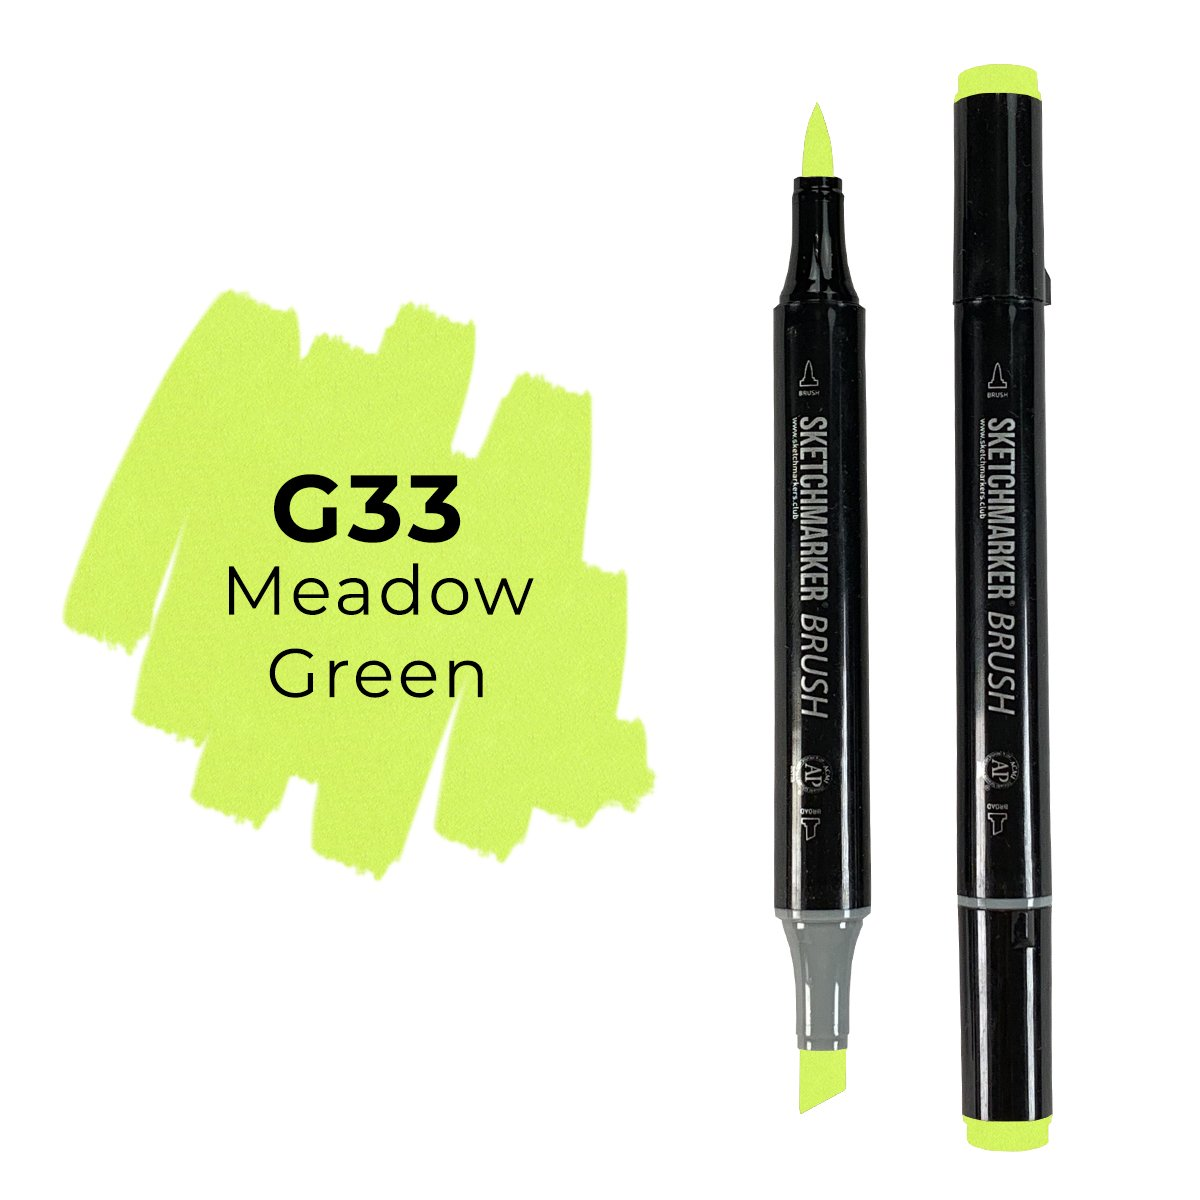 SKETCHMARKER BRUSH PRO Color: Meadow Green